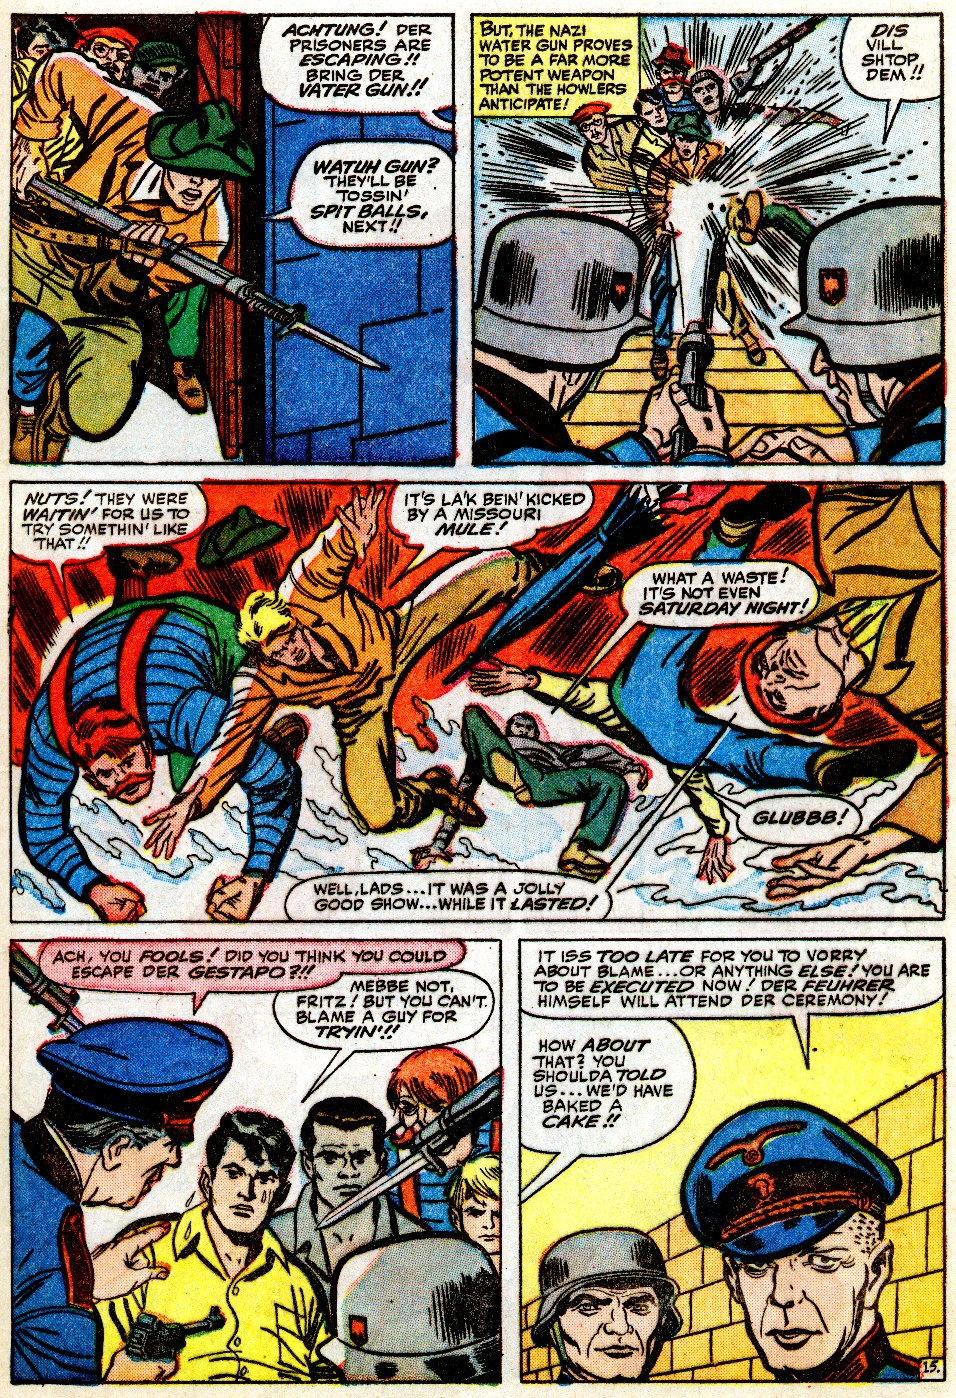 Read online Sgt. Fury comic -  Issue #9 - 21